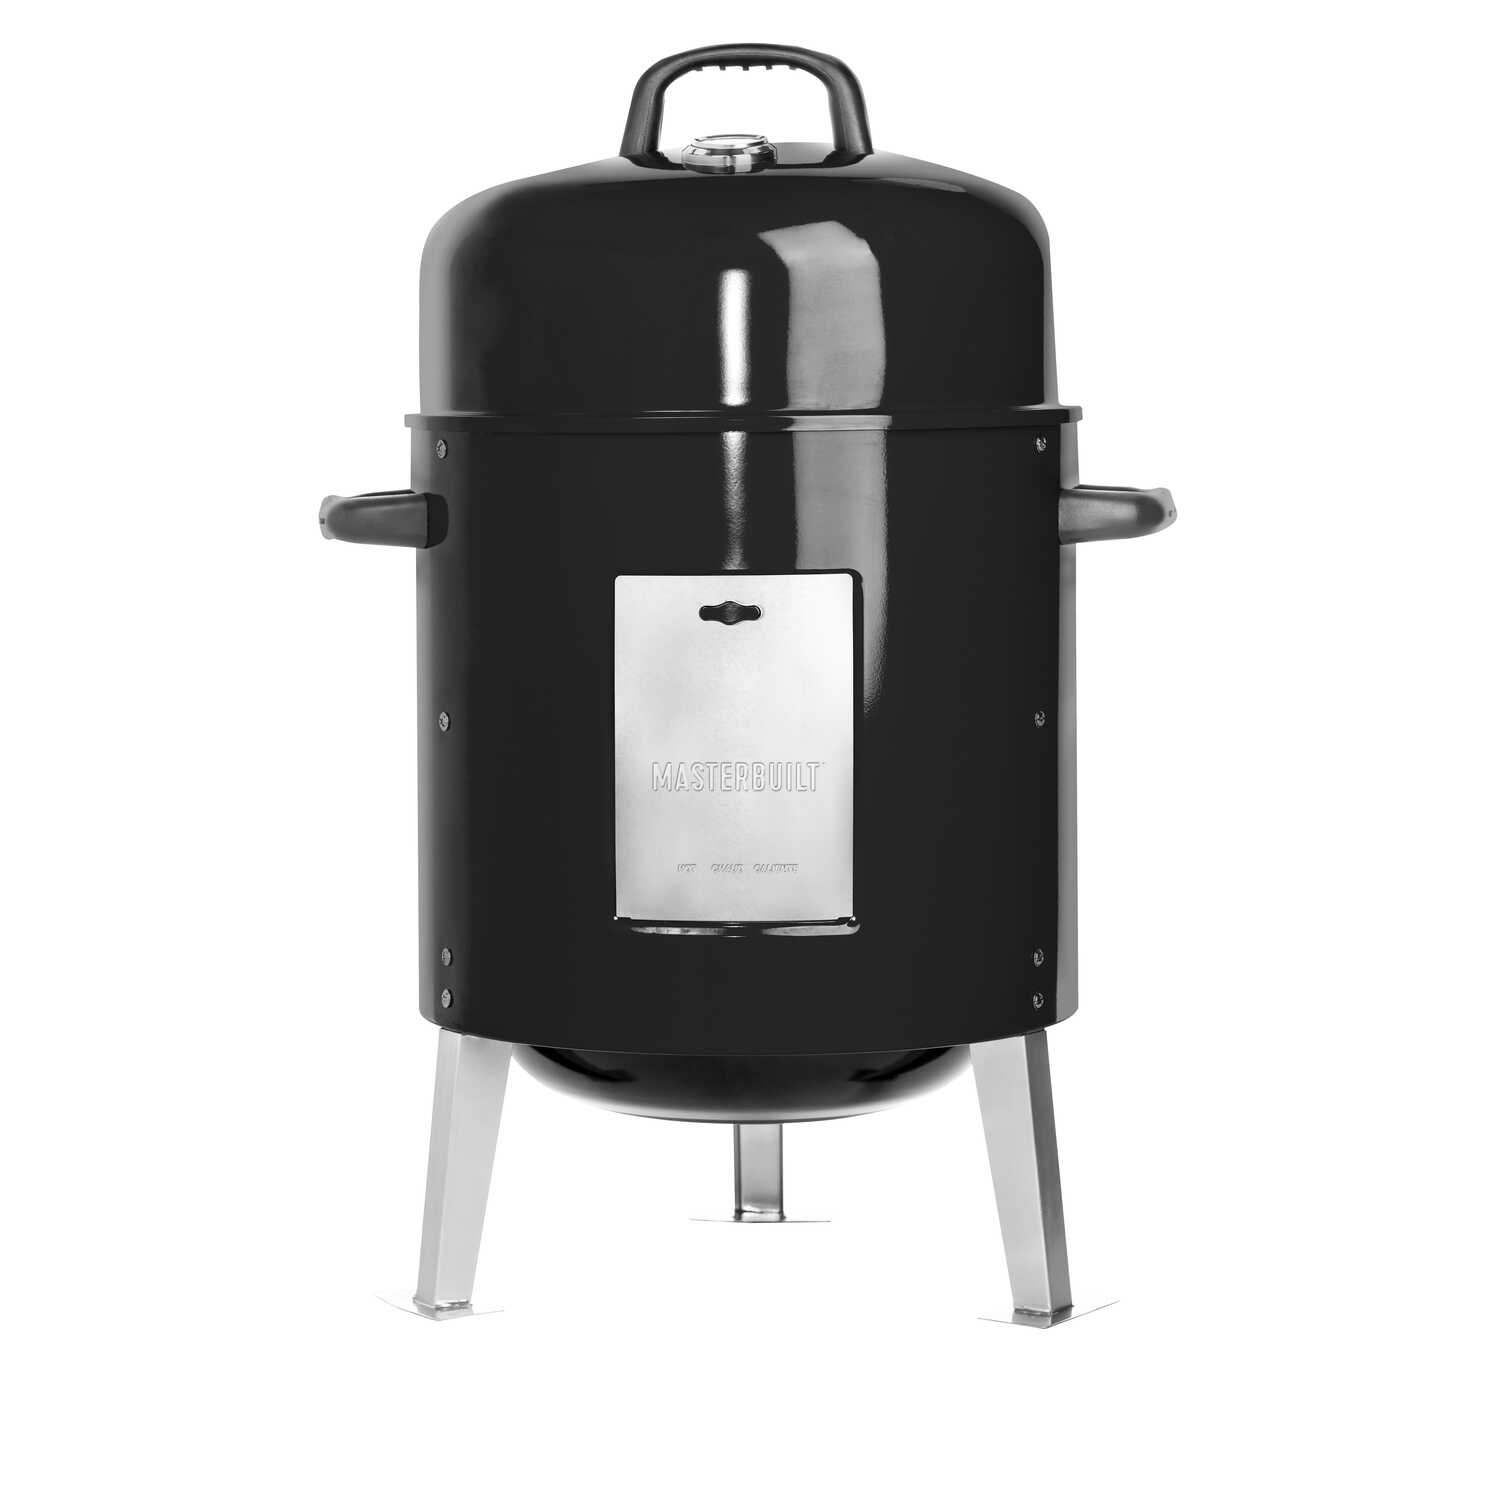 Masterbuilt  21.65 in. W Charcoal  Smoker  Black